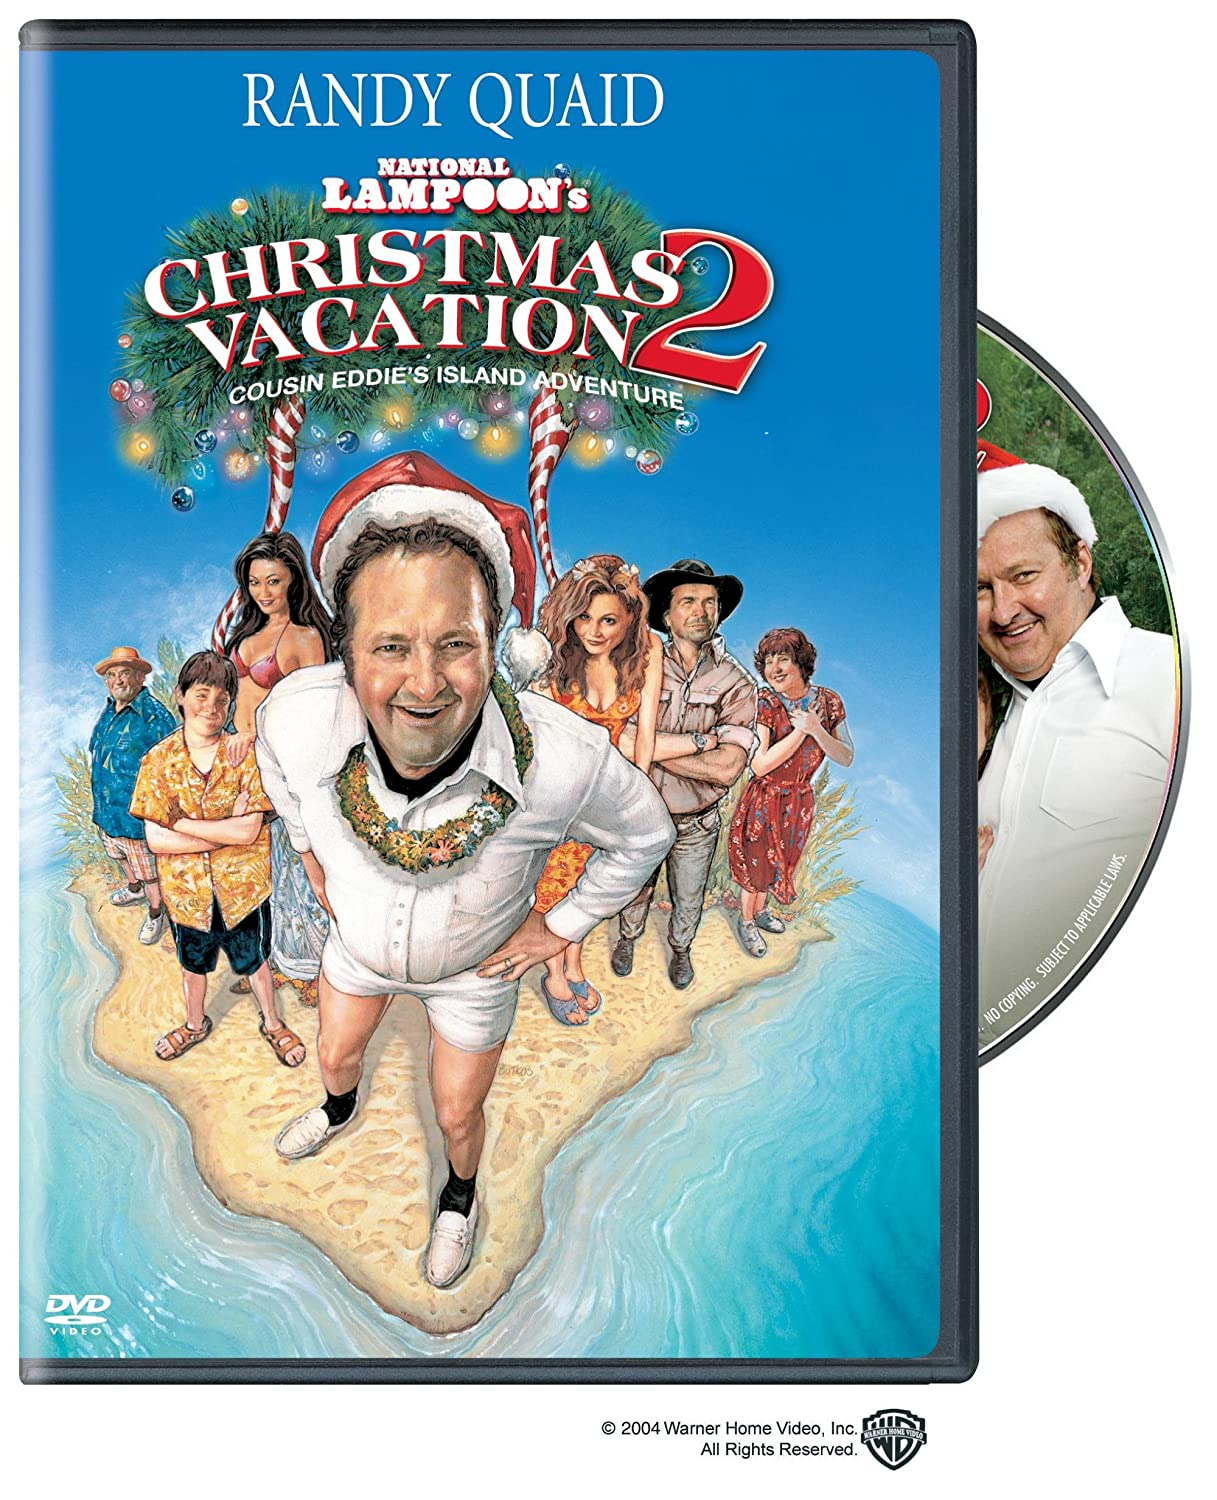 Amazon.com: National Lampoon's Christmas Vacation 2 - Cousin ...